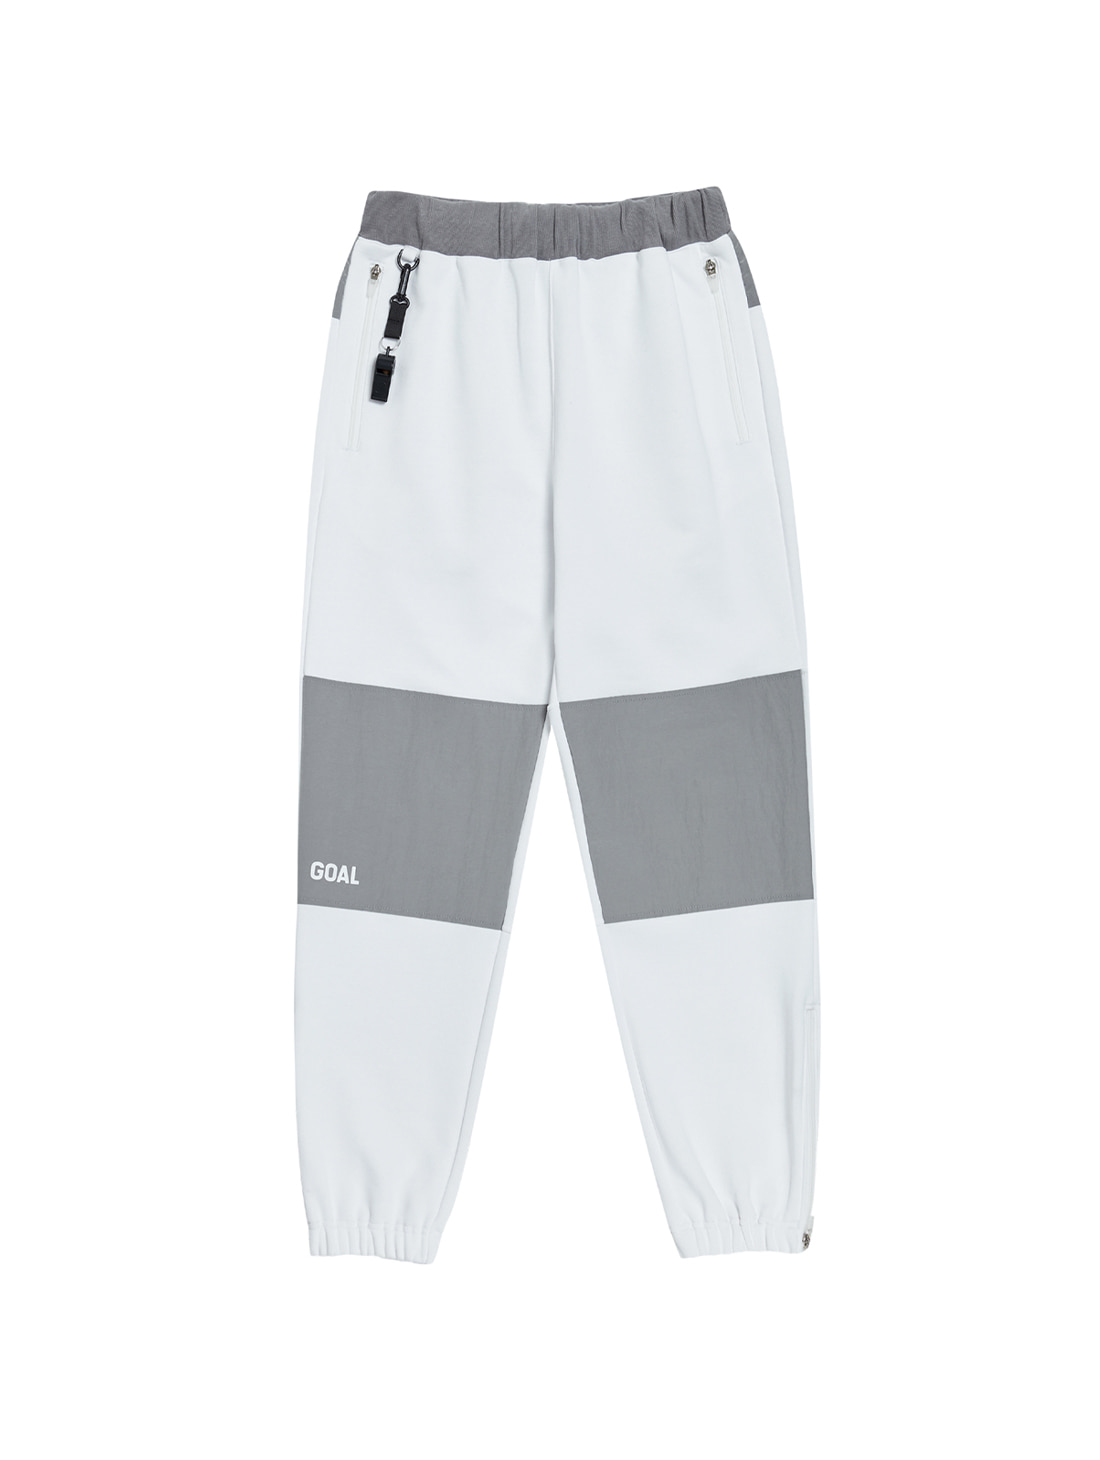 GOALSTUDIO NYLON METAL MIXED TRACK PANTS - WHITE